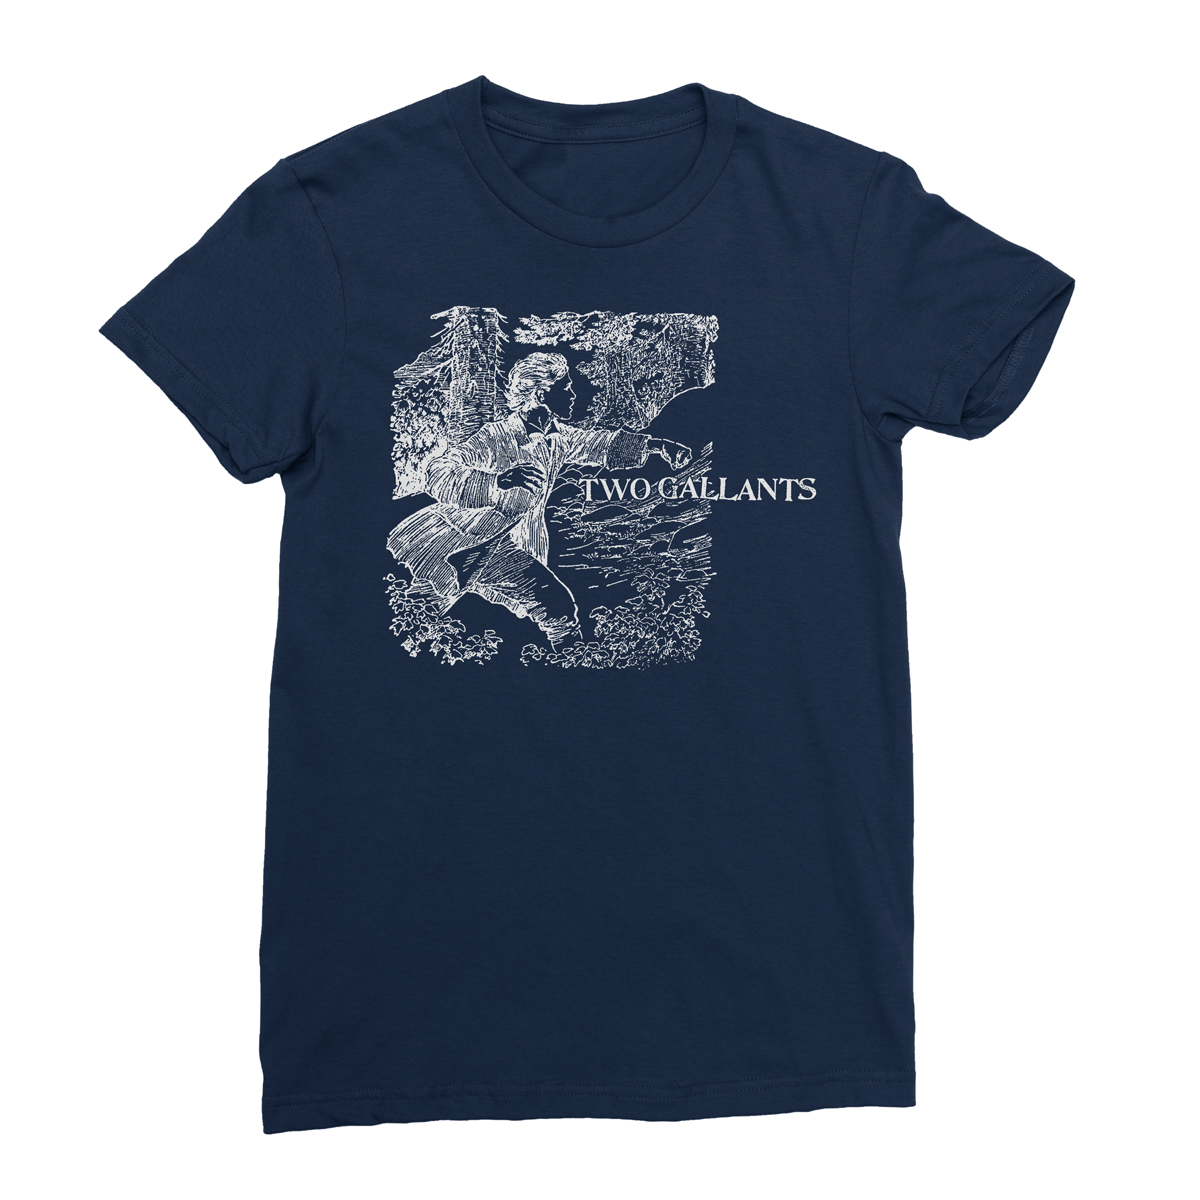 Forest/Throes Tee - Navy - Two Gallants